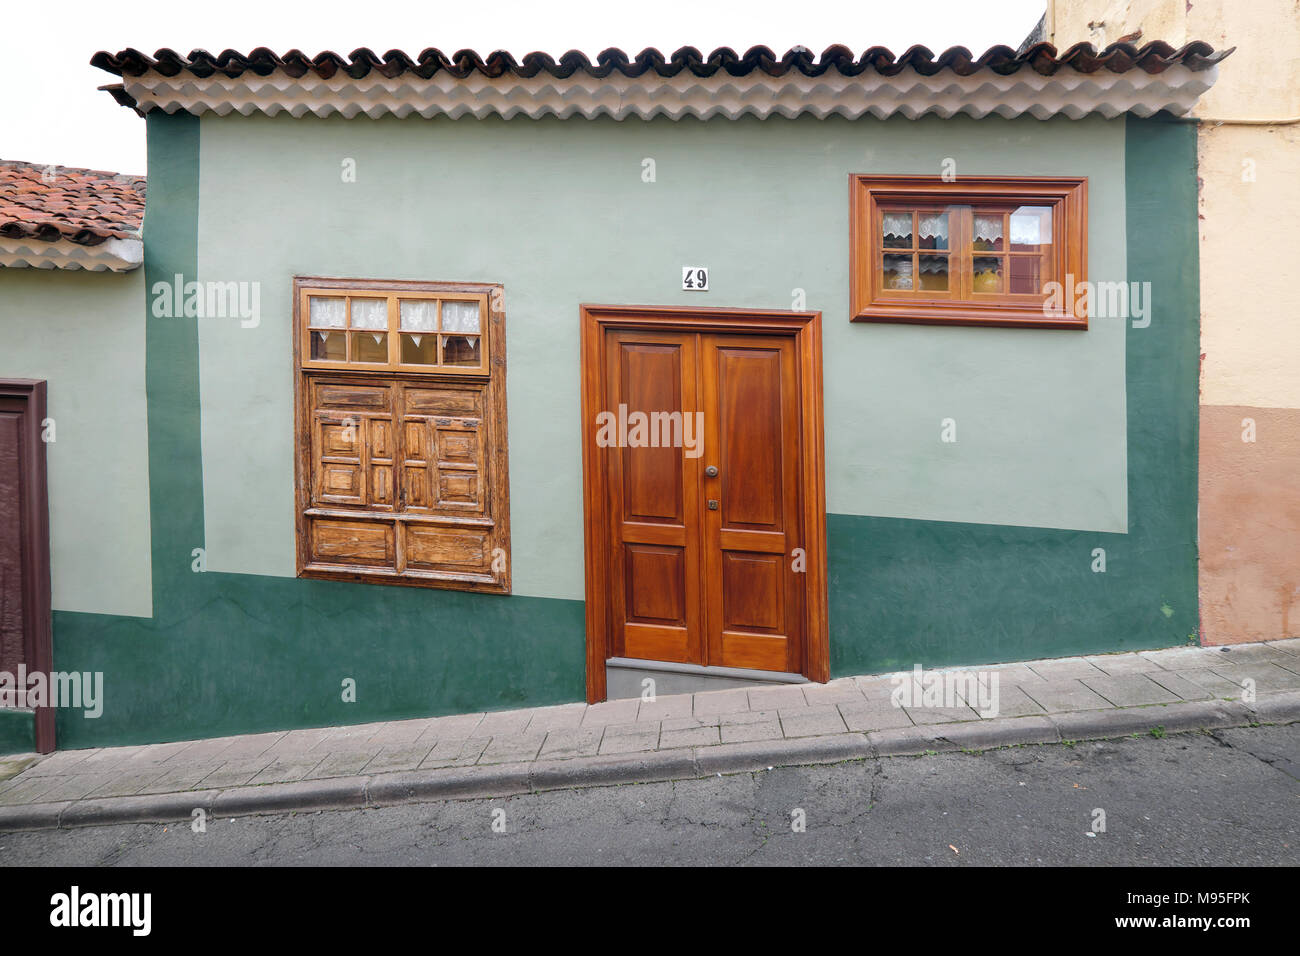 old buildings in the steeply hilly town of la orotava in tenerife canary islands spain - Stock Image